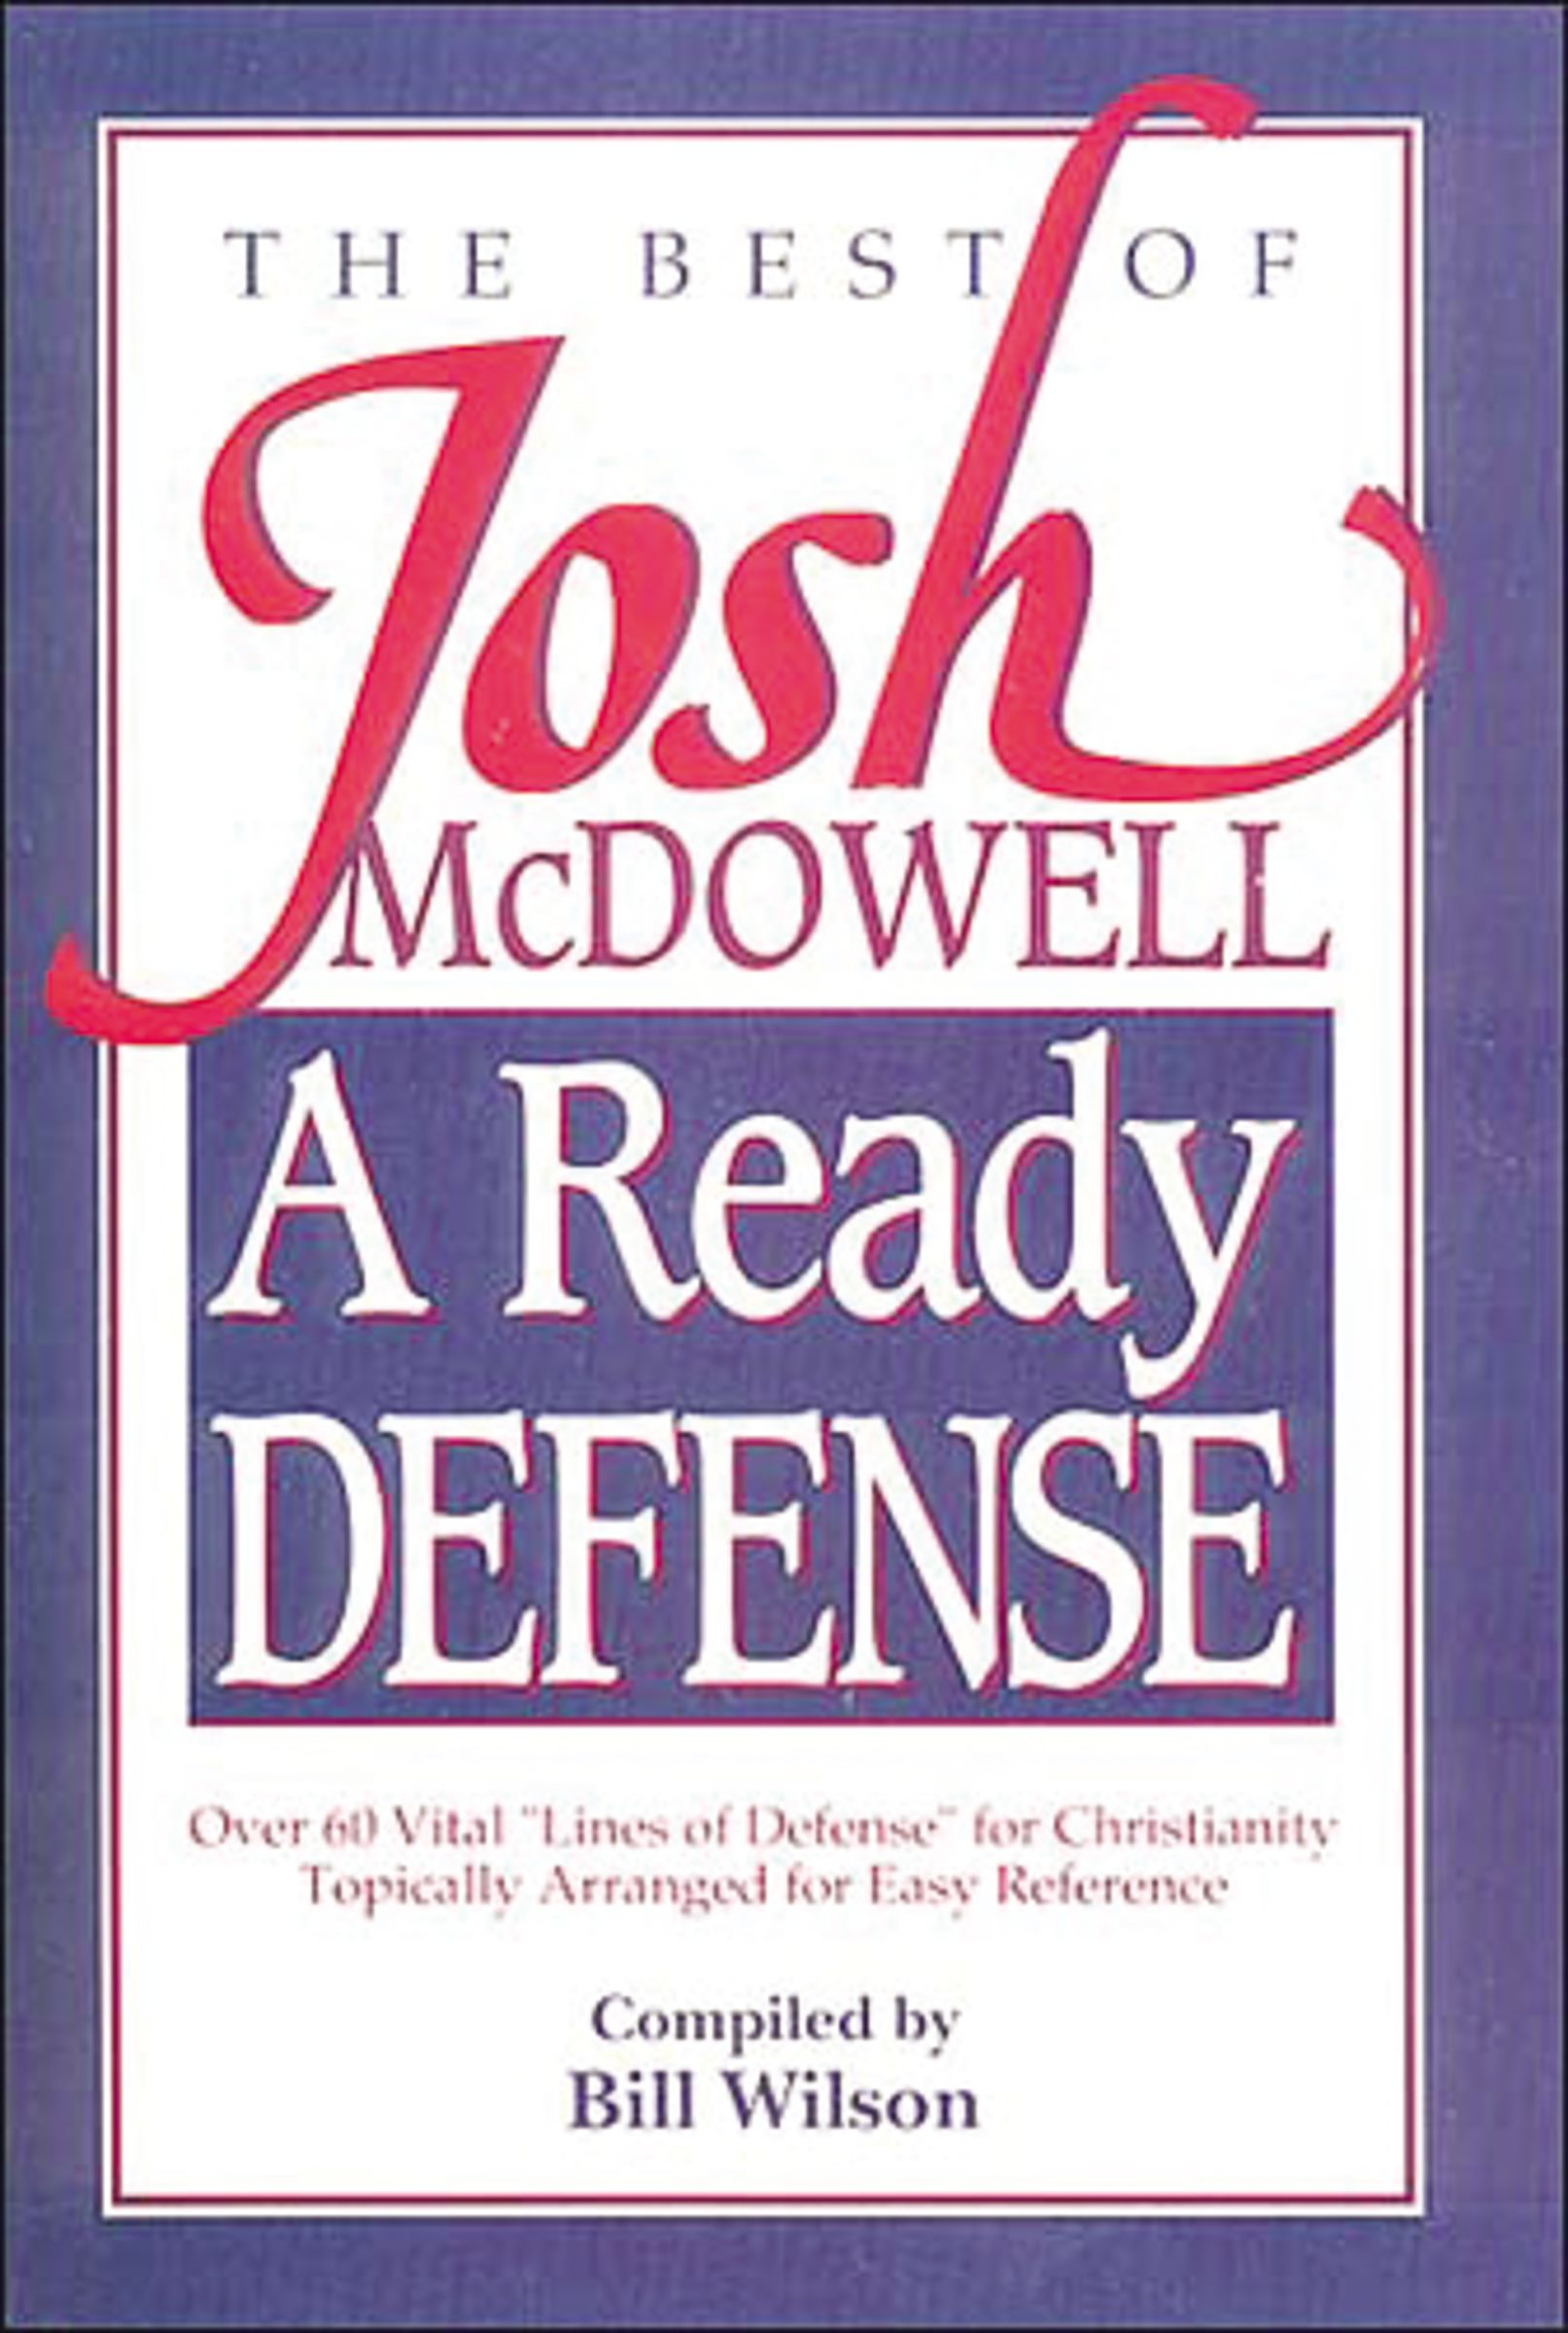 A Ready Defense